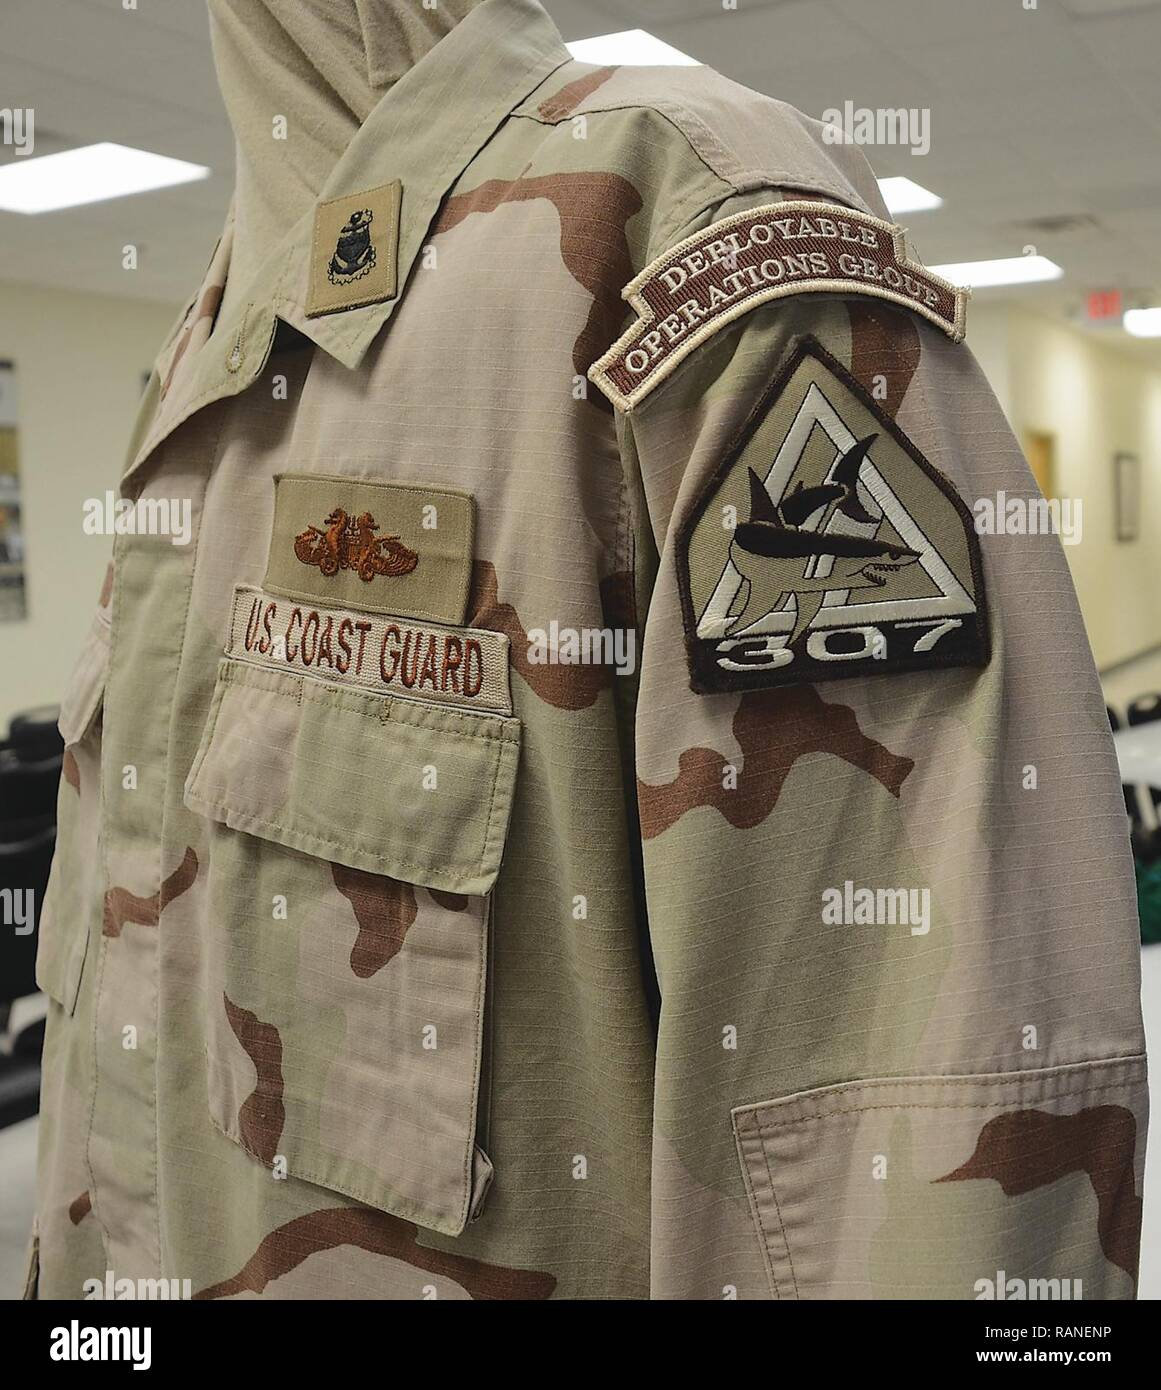 This Coast Guard Desert Combat Uniform represents a Chief Petty Officer assigned to the 307th Port Security in Clearwater, Fla. The uniform is among the hardest to find since only a few few thousand Coast Guardsmen deployed.   This unit saw deployments to Iraq and Guantanamo Bay, Cuba. Stock Photo